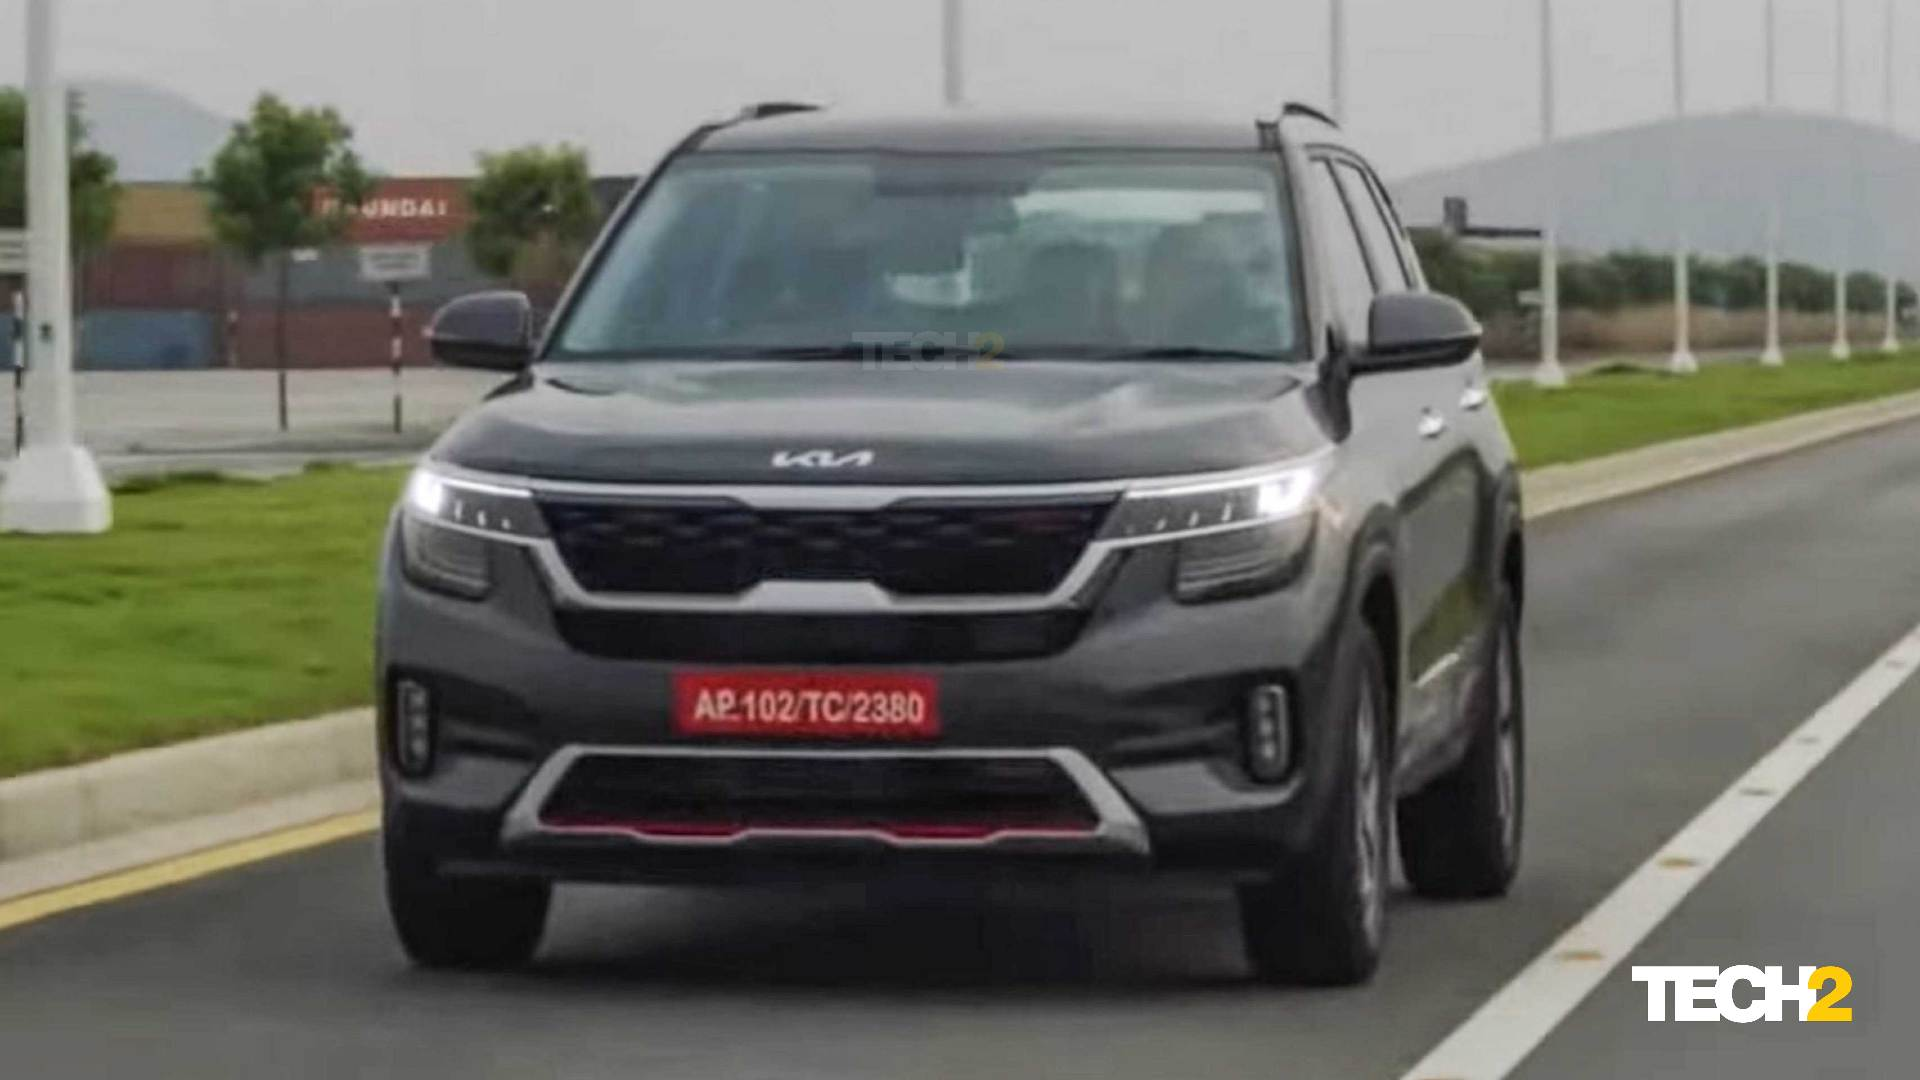 The updated Kia Seltos will also get some added features. Image: Kia